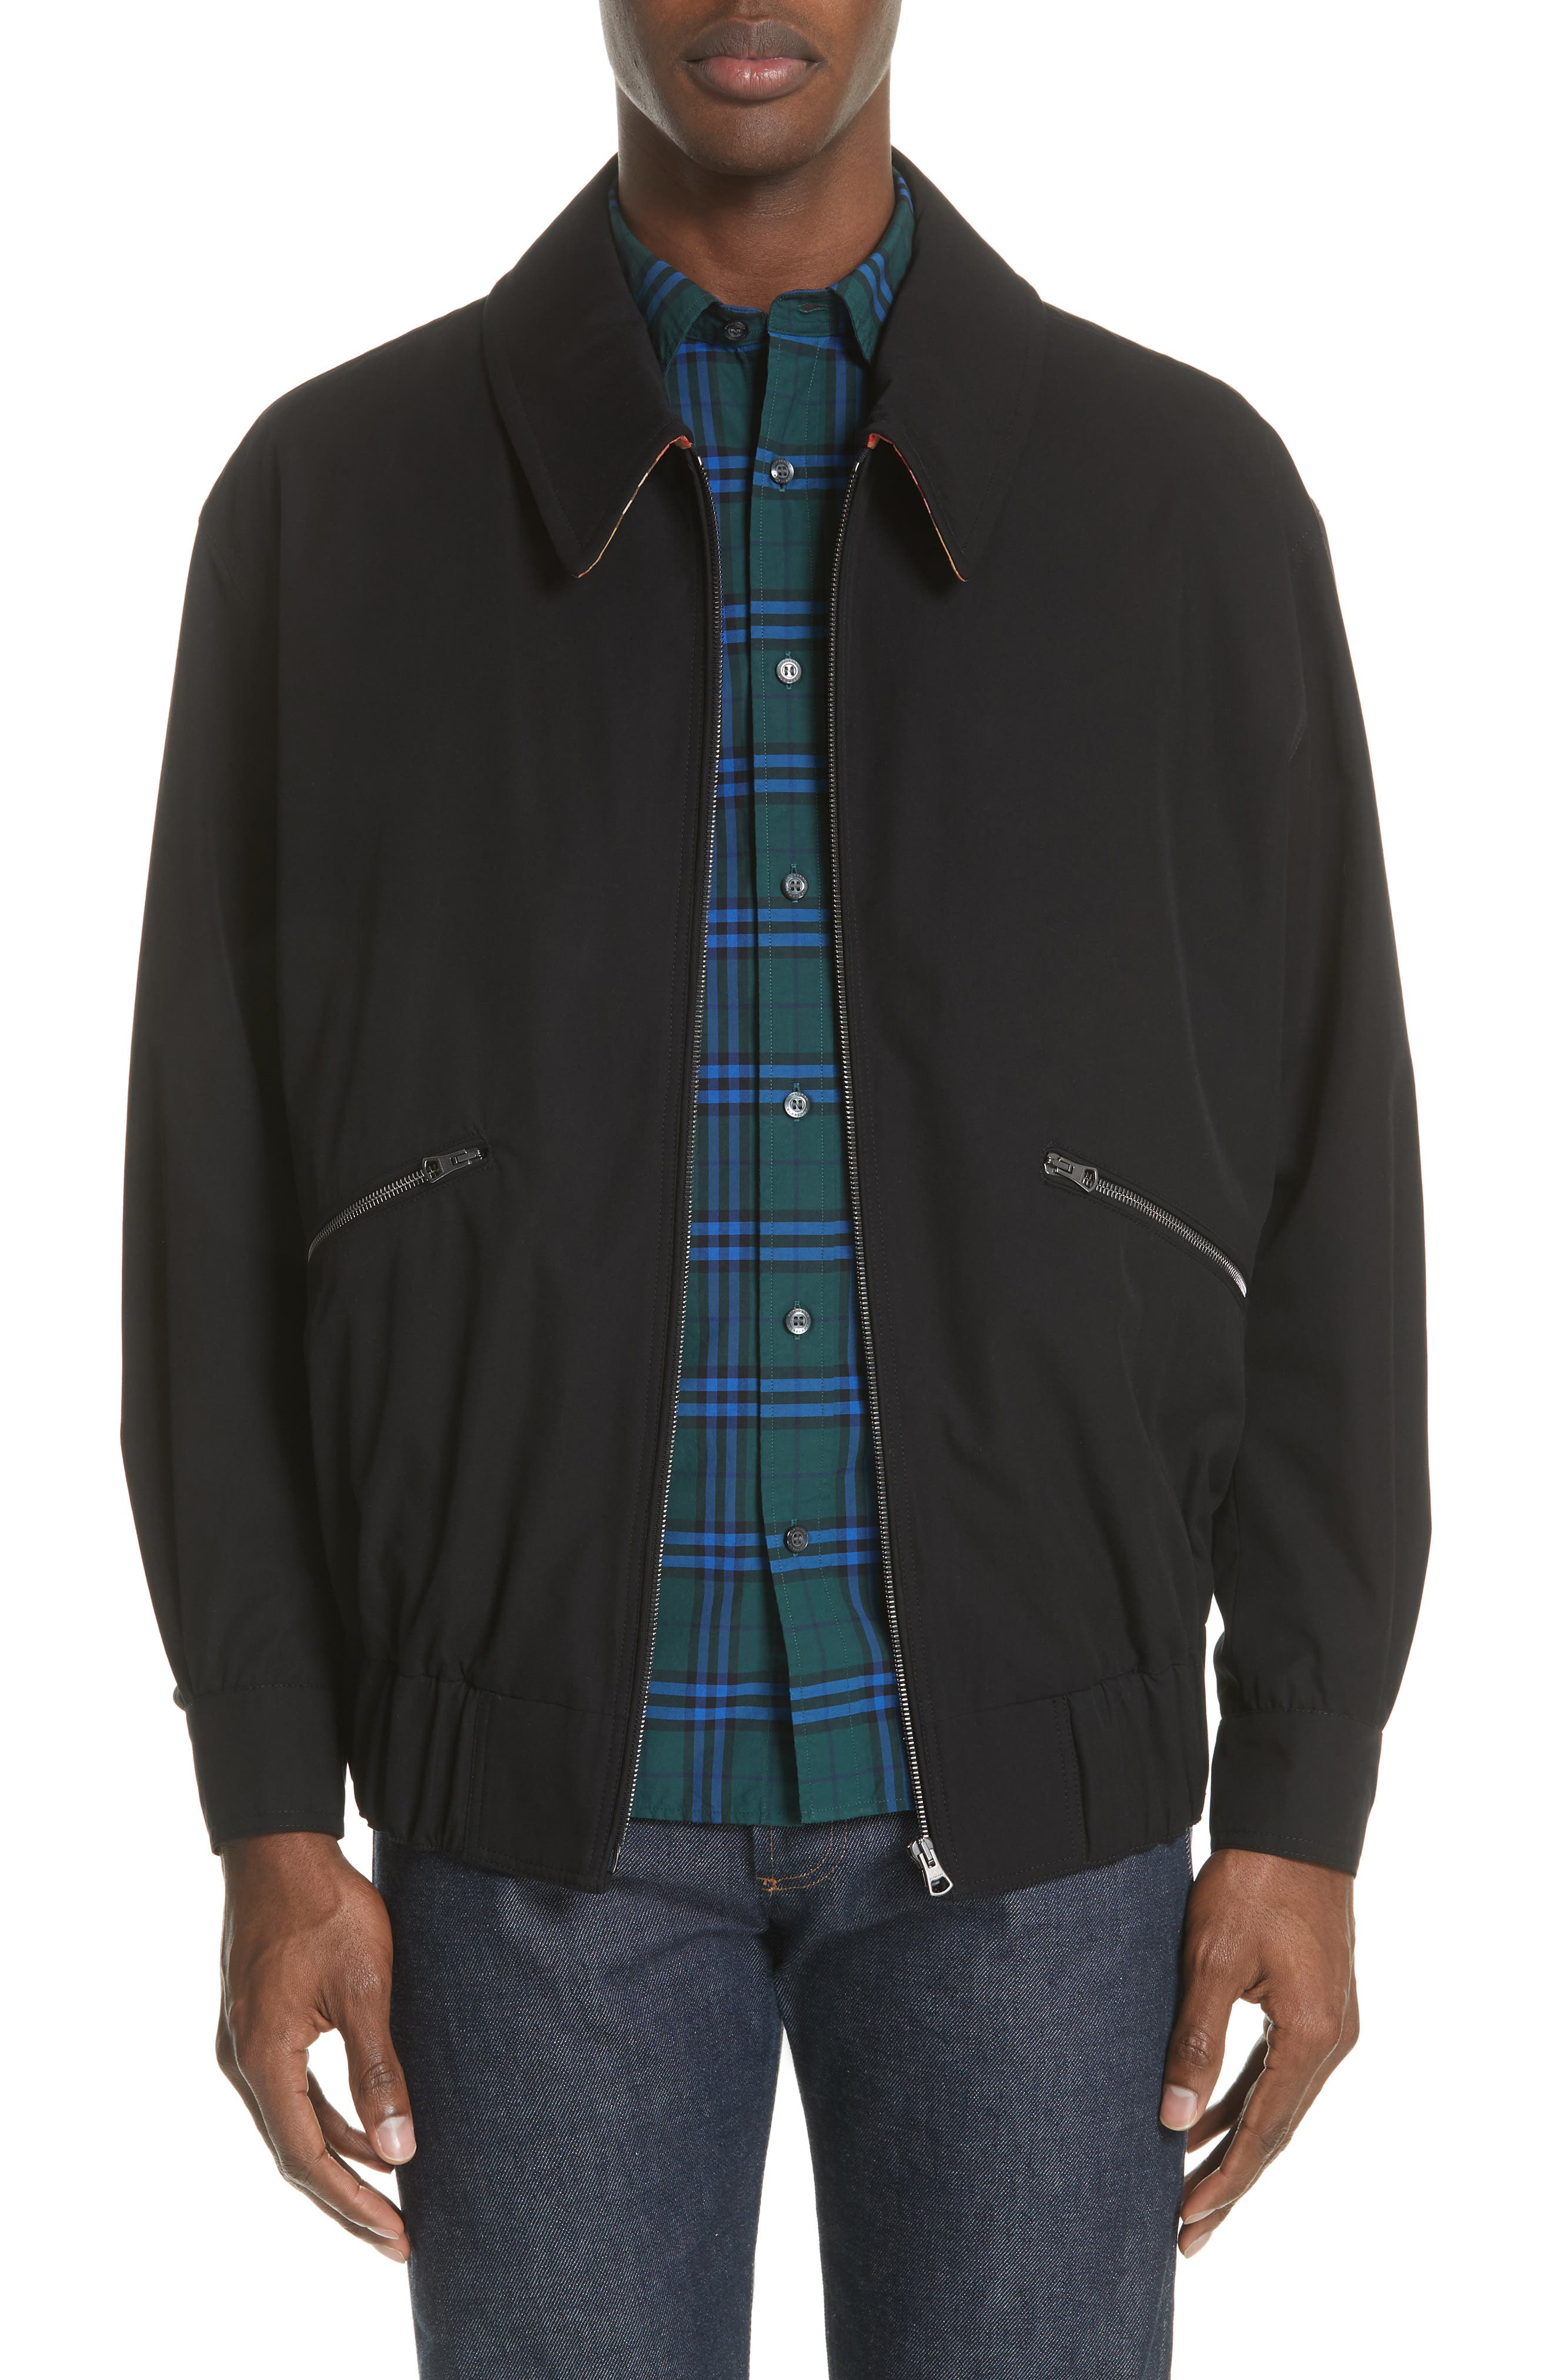 Loweswater Jacket,                             Main thumbnail 1, color,                             Black